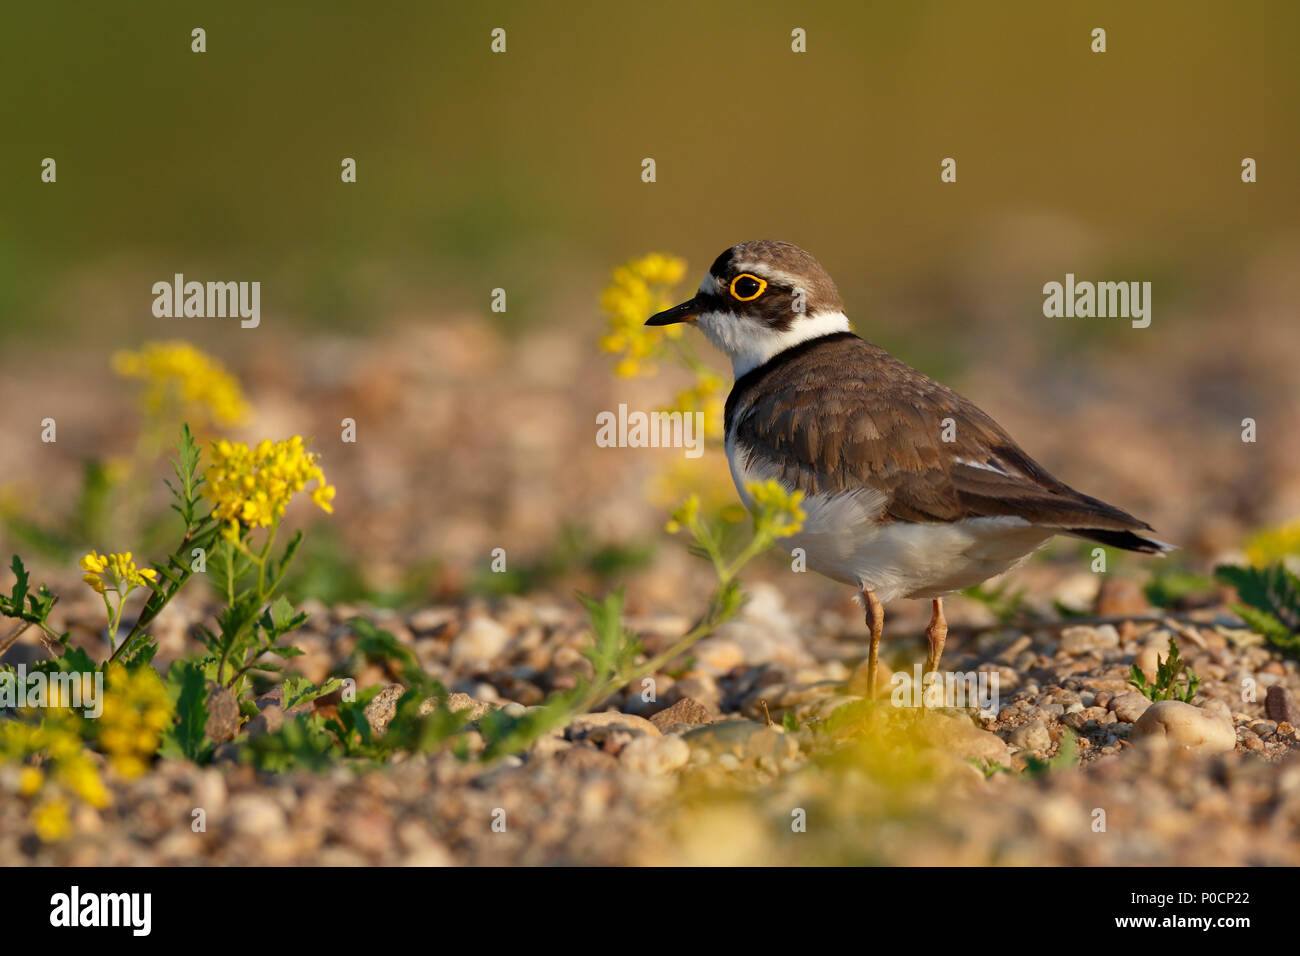 Little ringed plover (Charadrius dubius) on a gravel bank, Middle Elbe Biosphere Reserve, Saxony-Anhalt, Germany - Stock Image